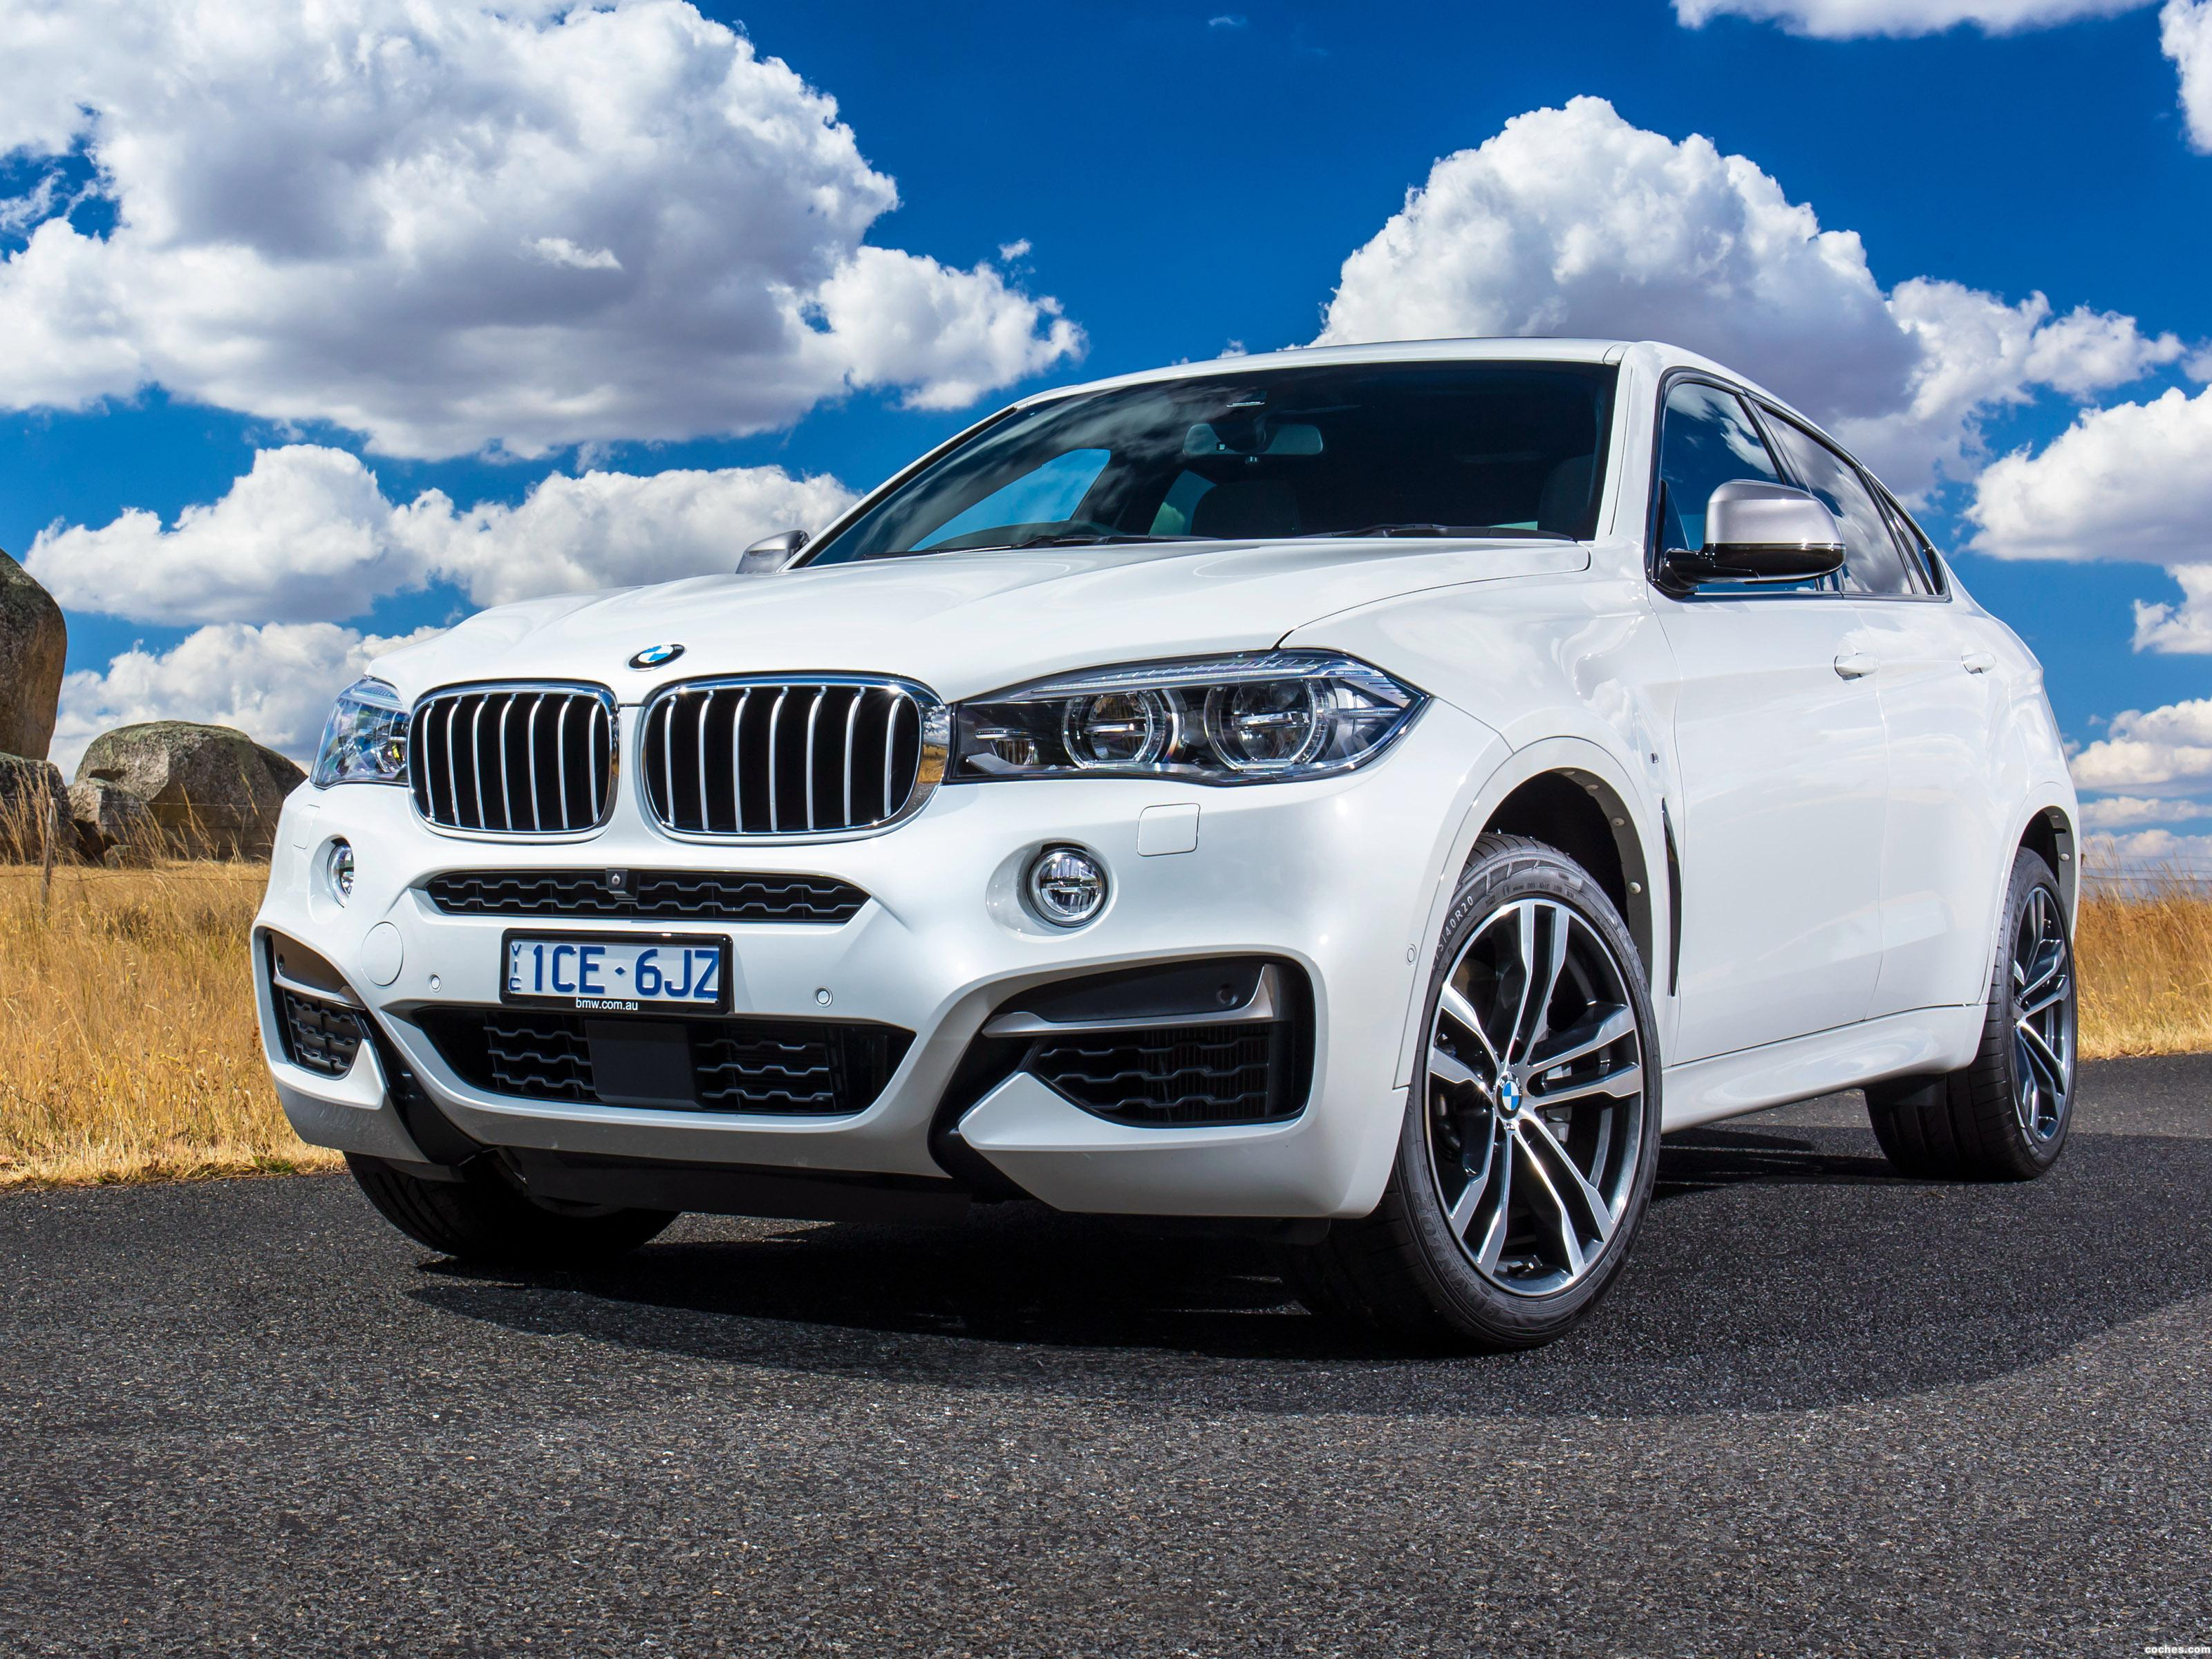 Bmw X6 S Bmw Photo Gallery F16 Bmw X6 Gets Bmw M Performance Parts Range Image 294415 Bmw Xi